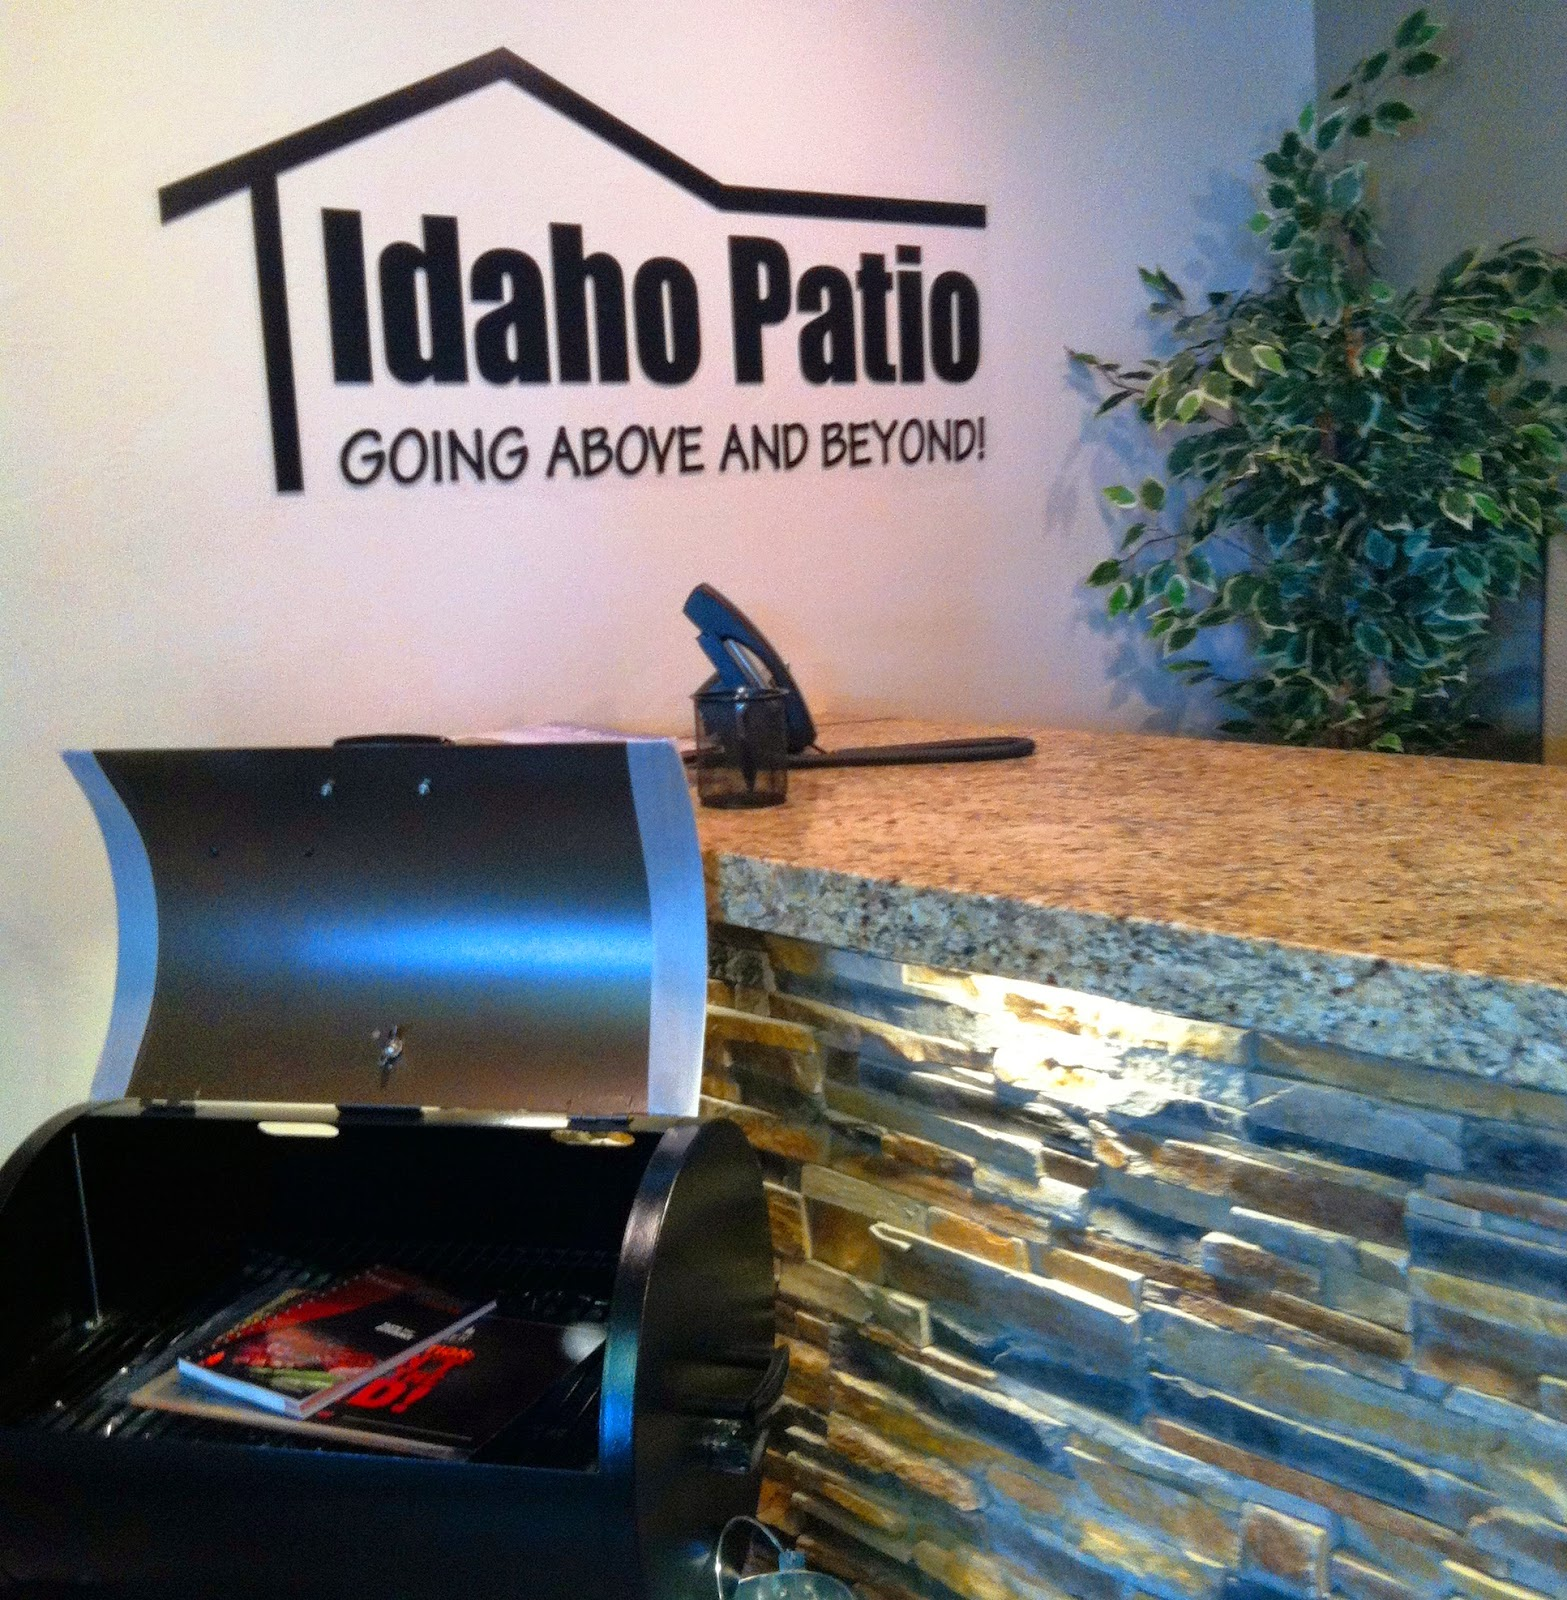 http://www.idahopatio.com/